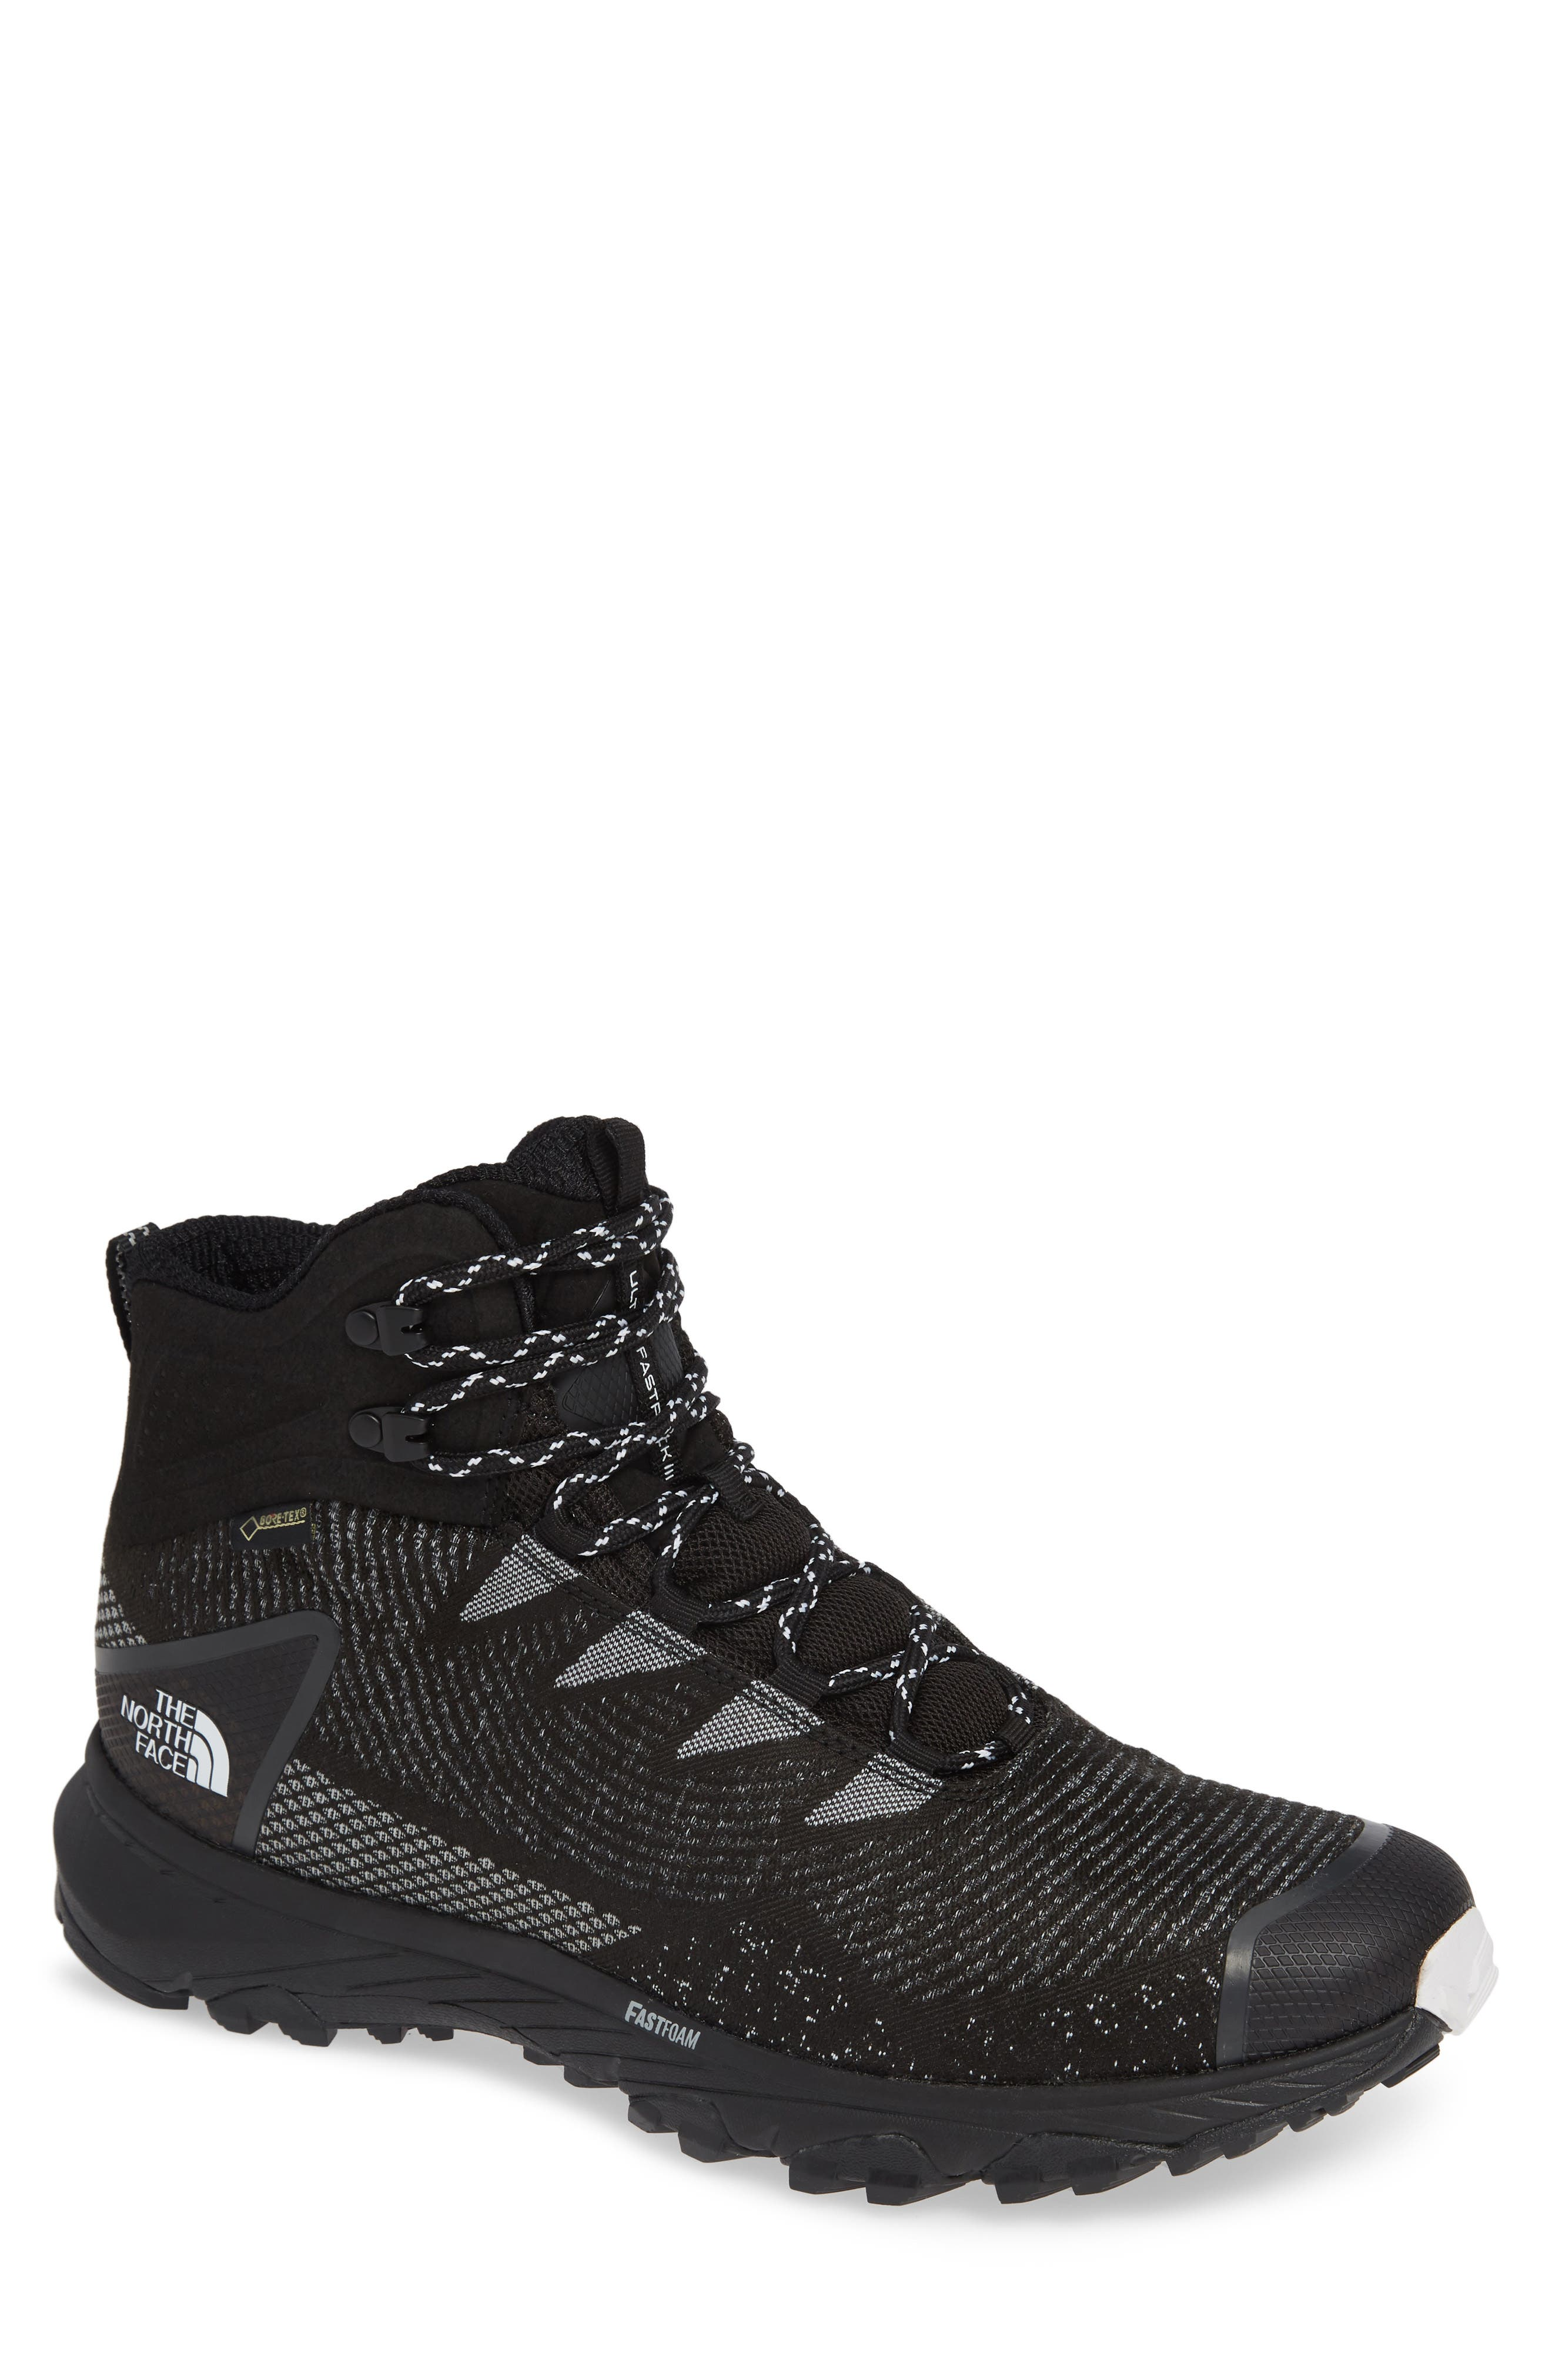 THE NORTH FACE Ultra Fastpack III Mid Gore-Tex<sup>®</sup> Hiking Boot, Main, color, BLACK/ WHITE